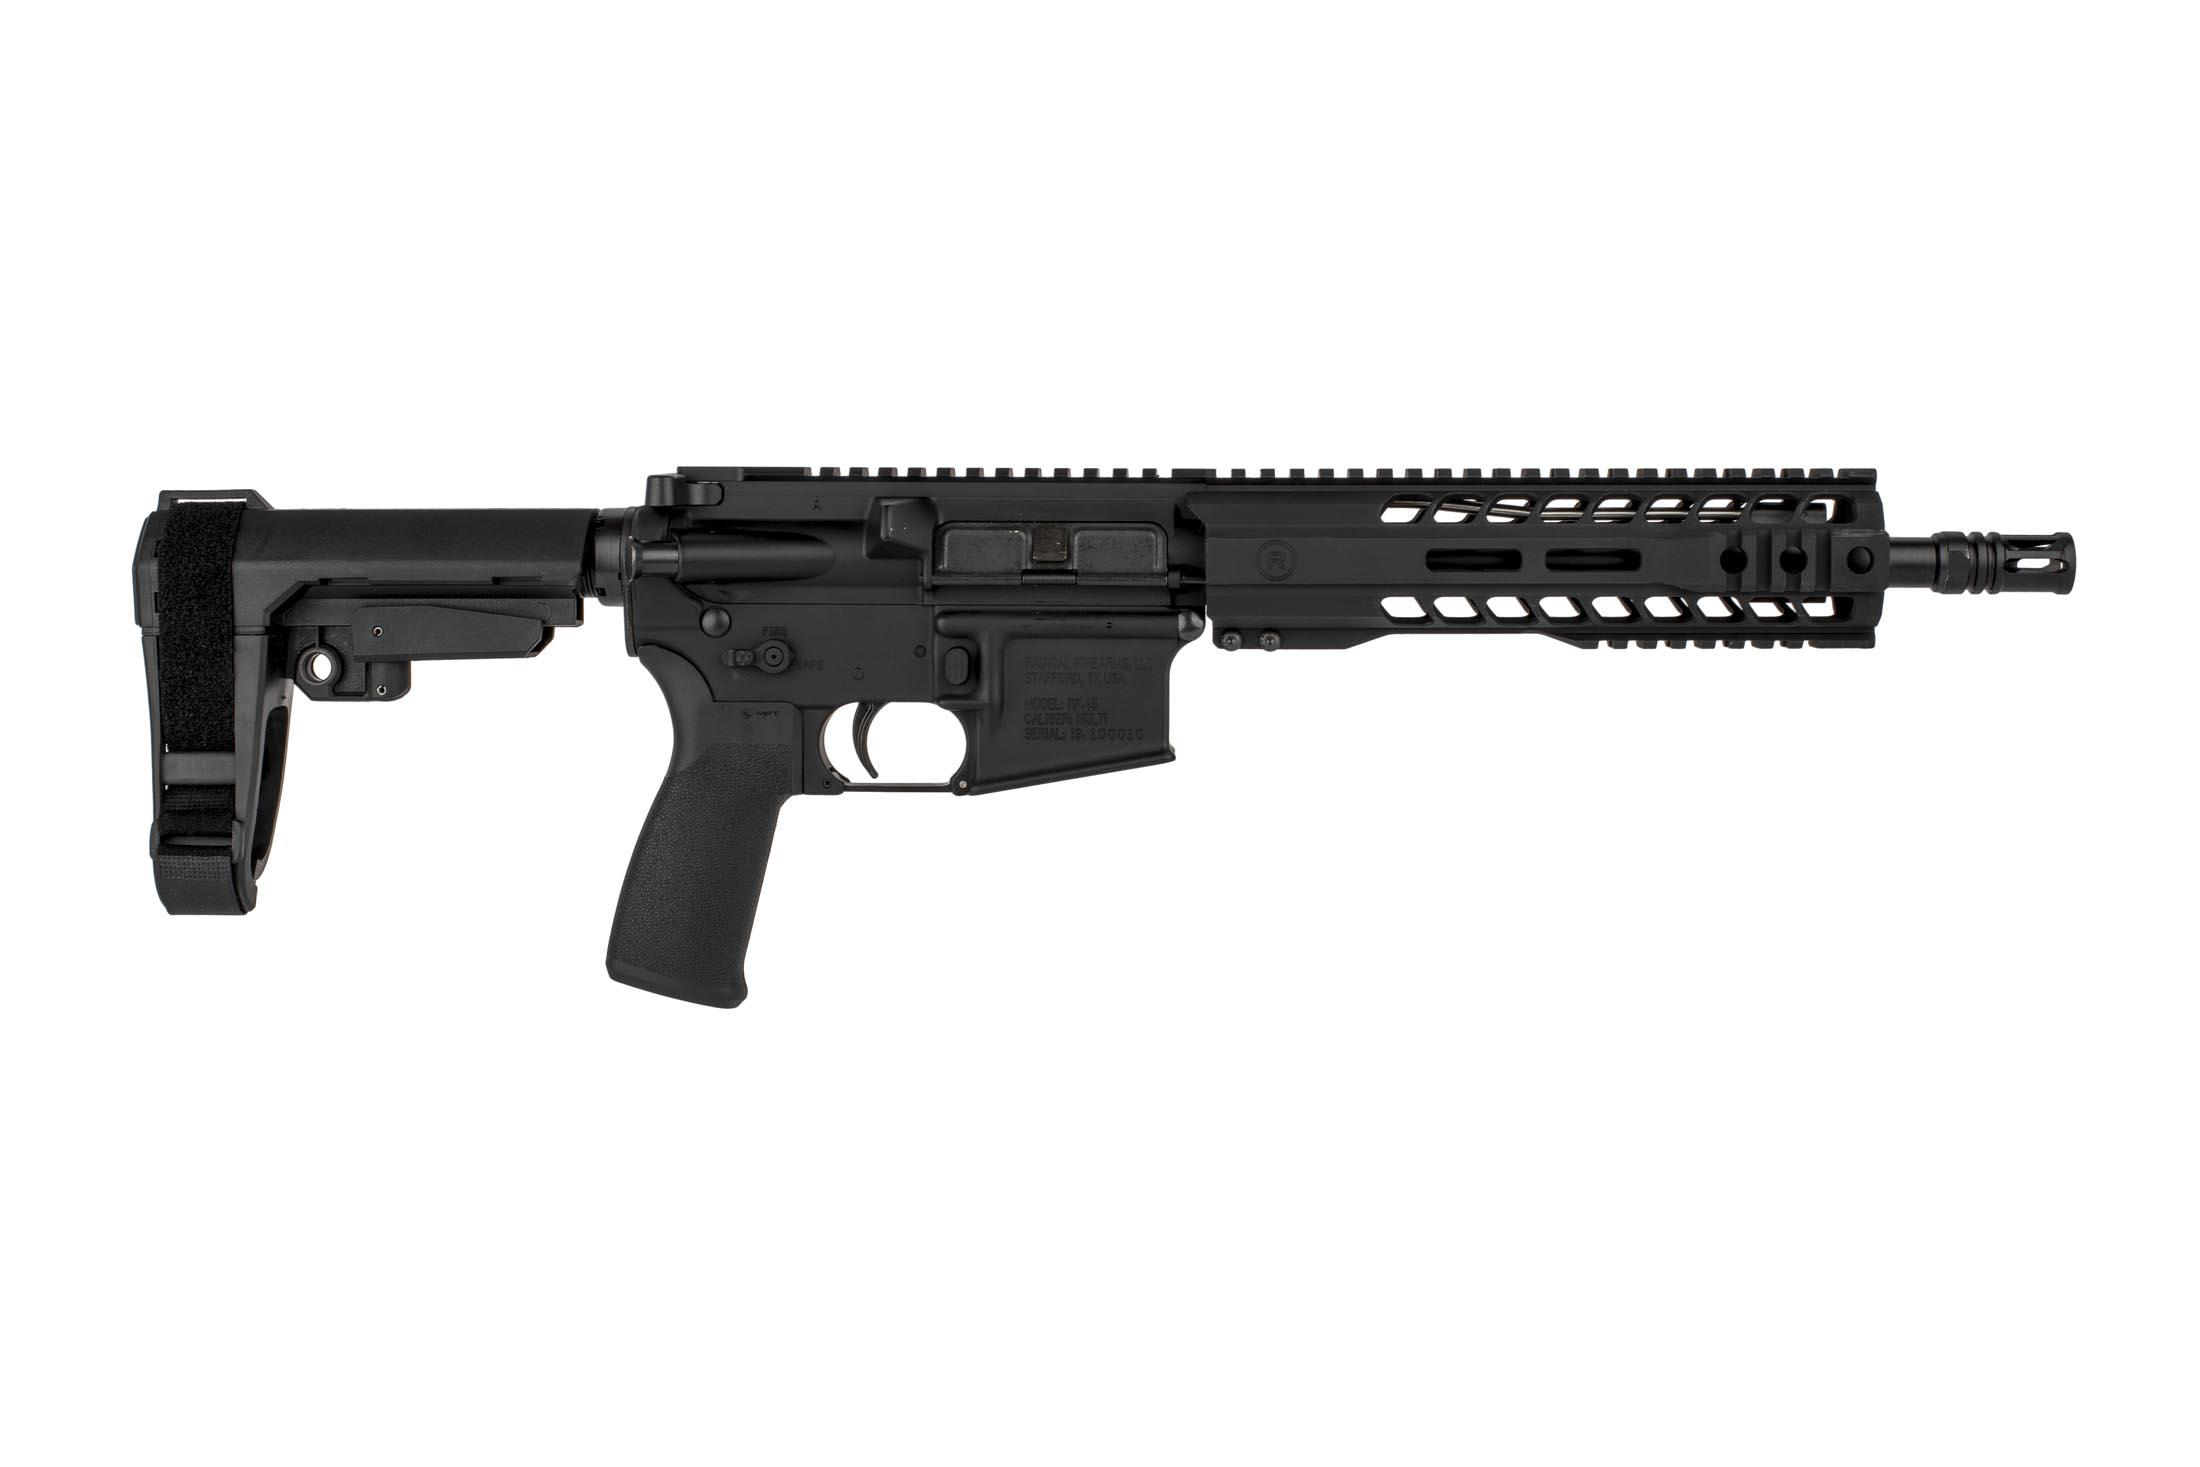 The Radical Firearms 7.62x39 pistol features an SBA3 arm brace and MHR free float handguard